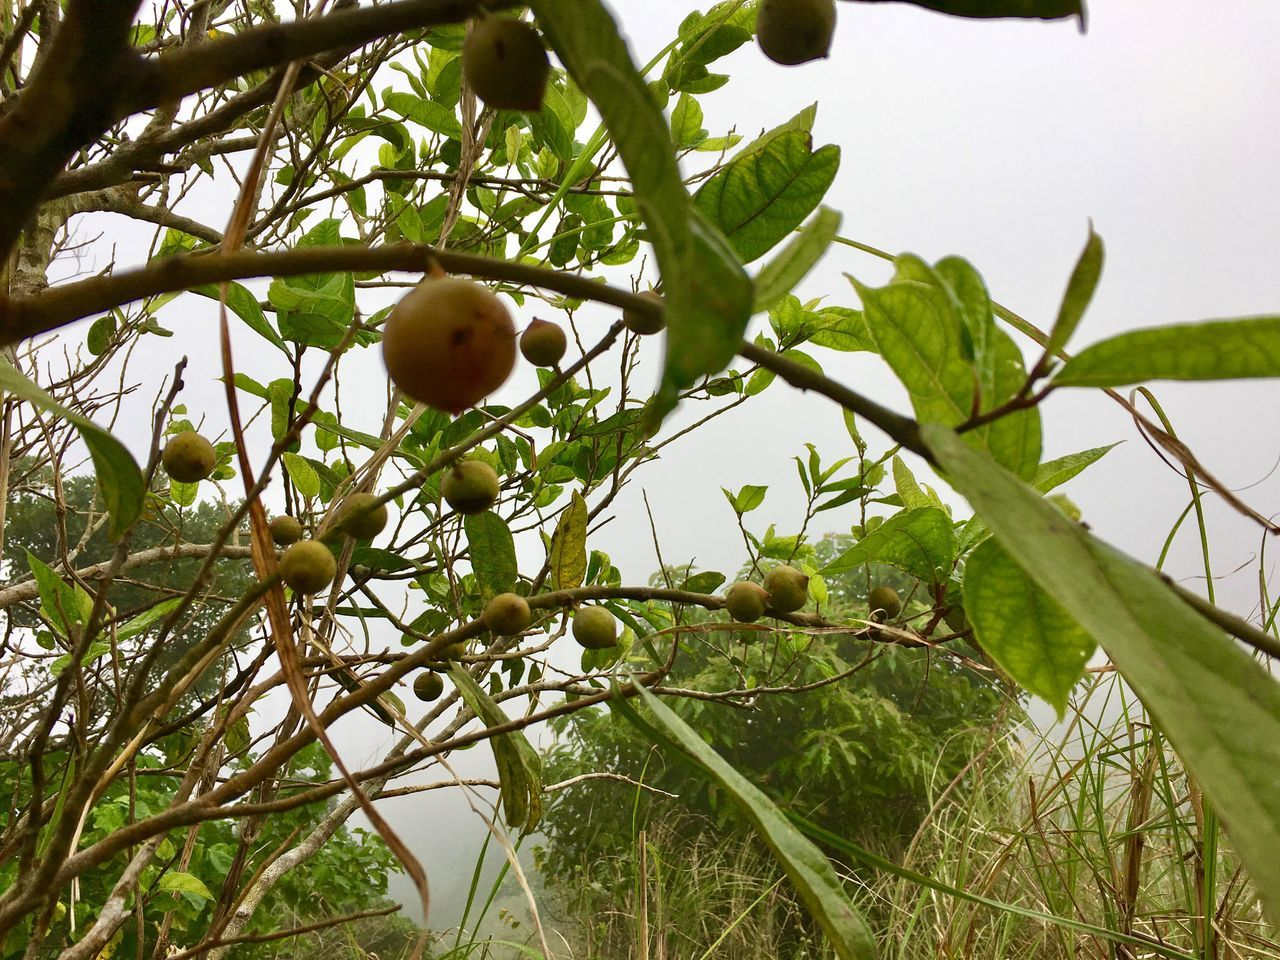 Fruit Tree Leaf Growth Food Freshness Branch Citrus Fruit Nature Food And Drink Low Angle View Fruit Tree Juicy Agriculture Plant Outdoors No People Close-up Day